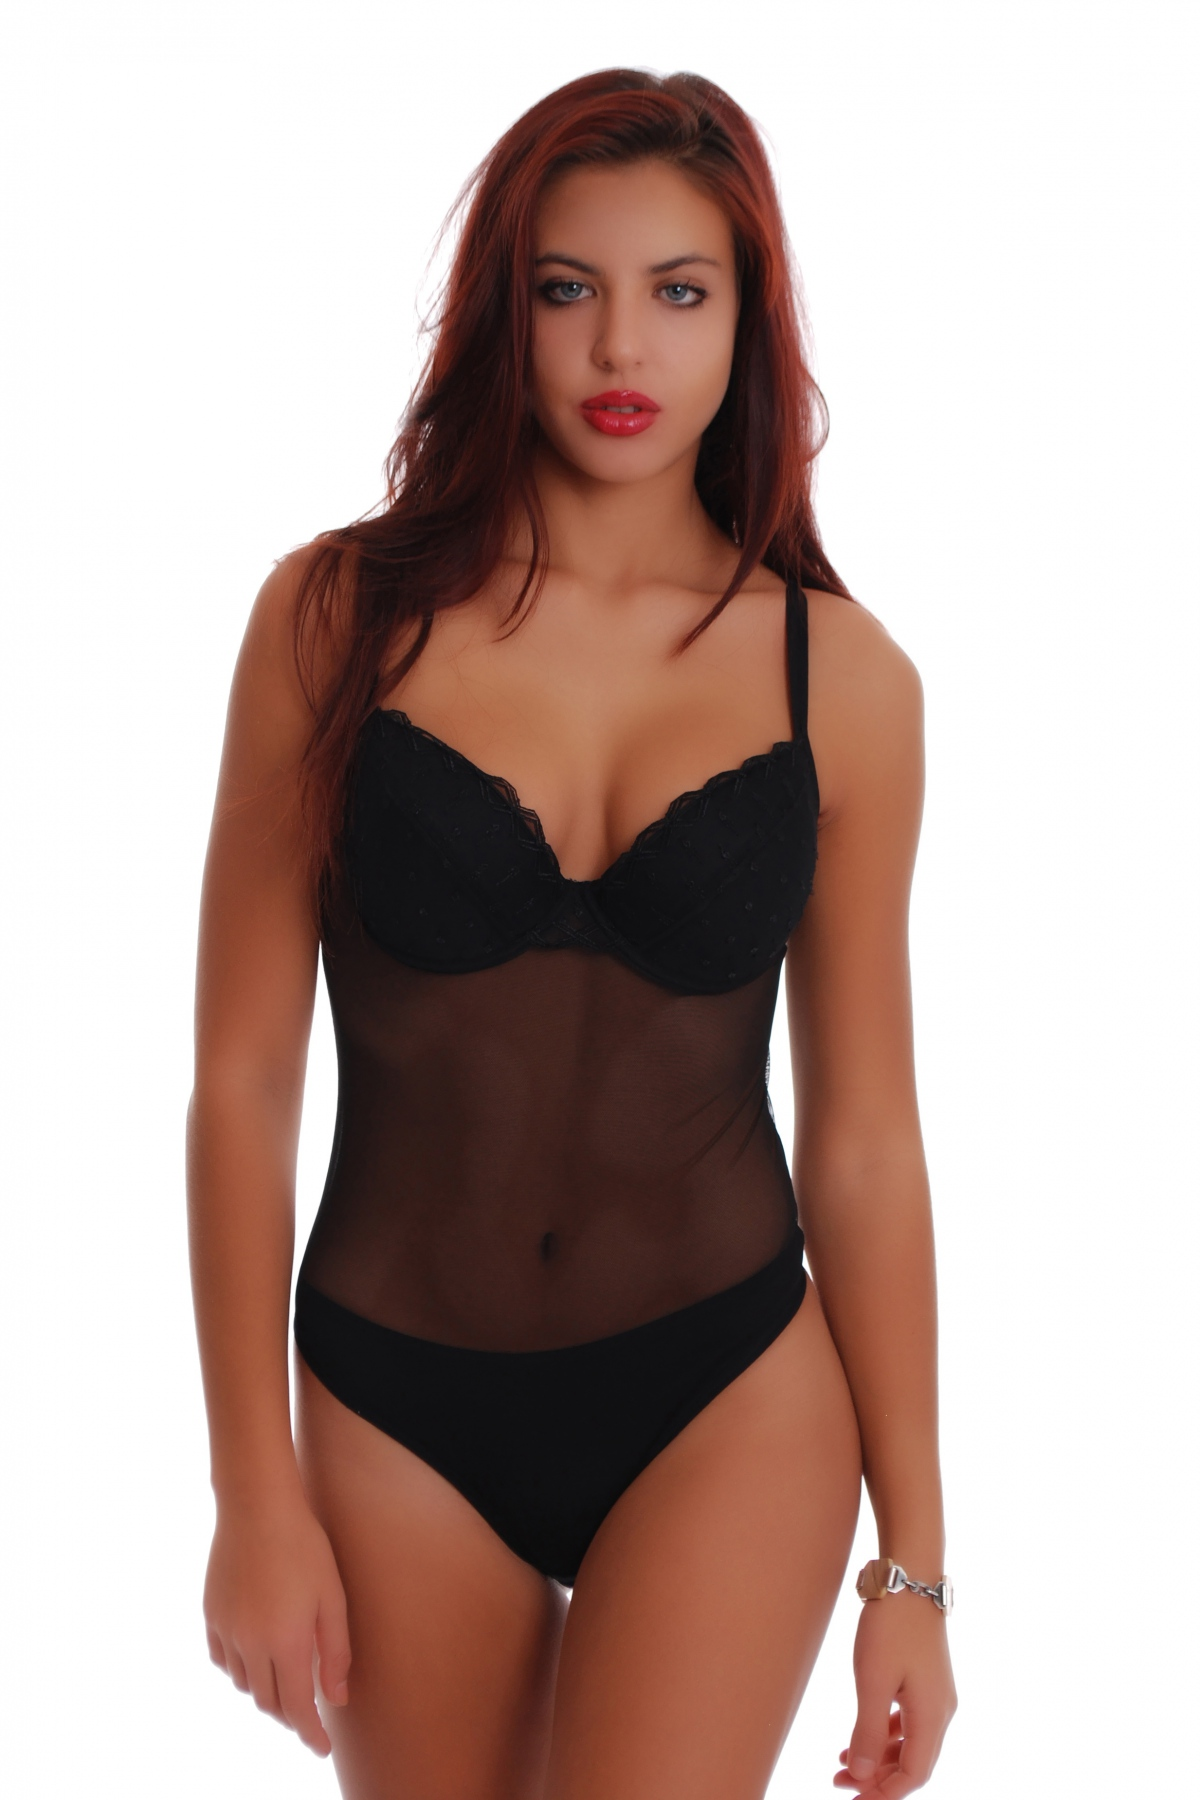 accc8b0b102a1 Ladies Bodysuit lace hard cup built bra thong style 603. Tap to expand